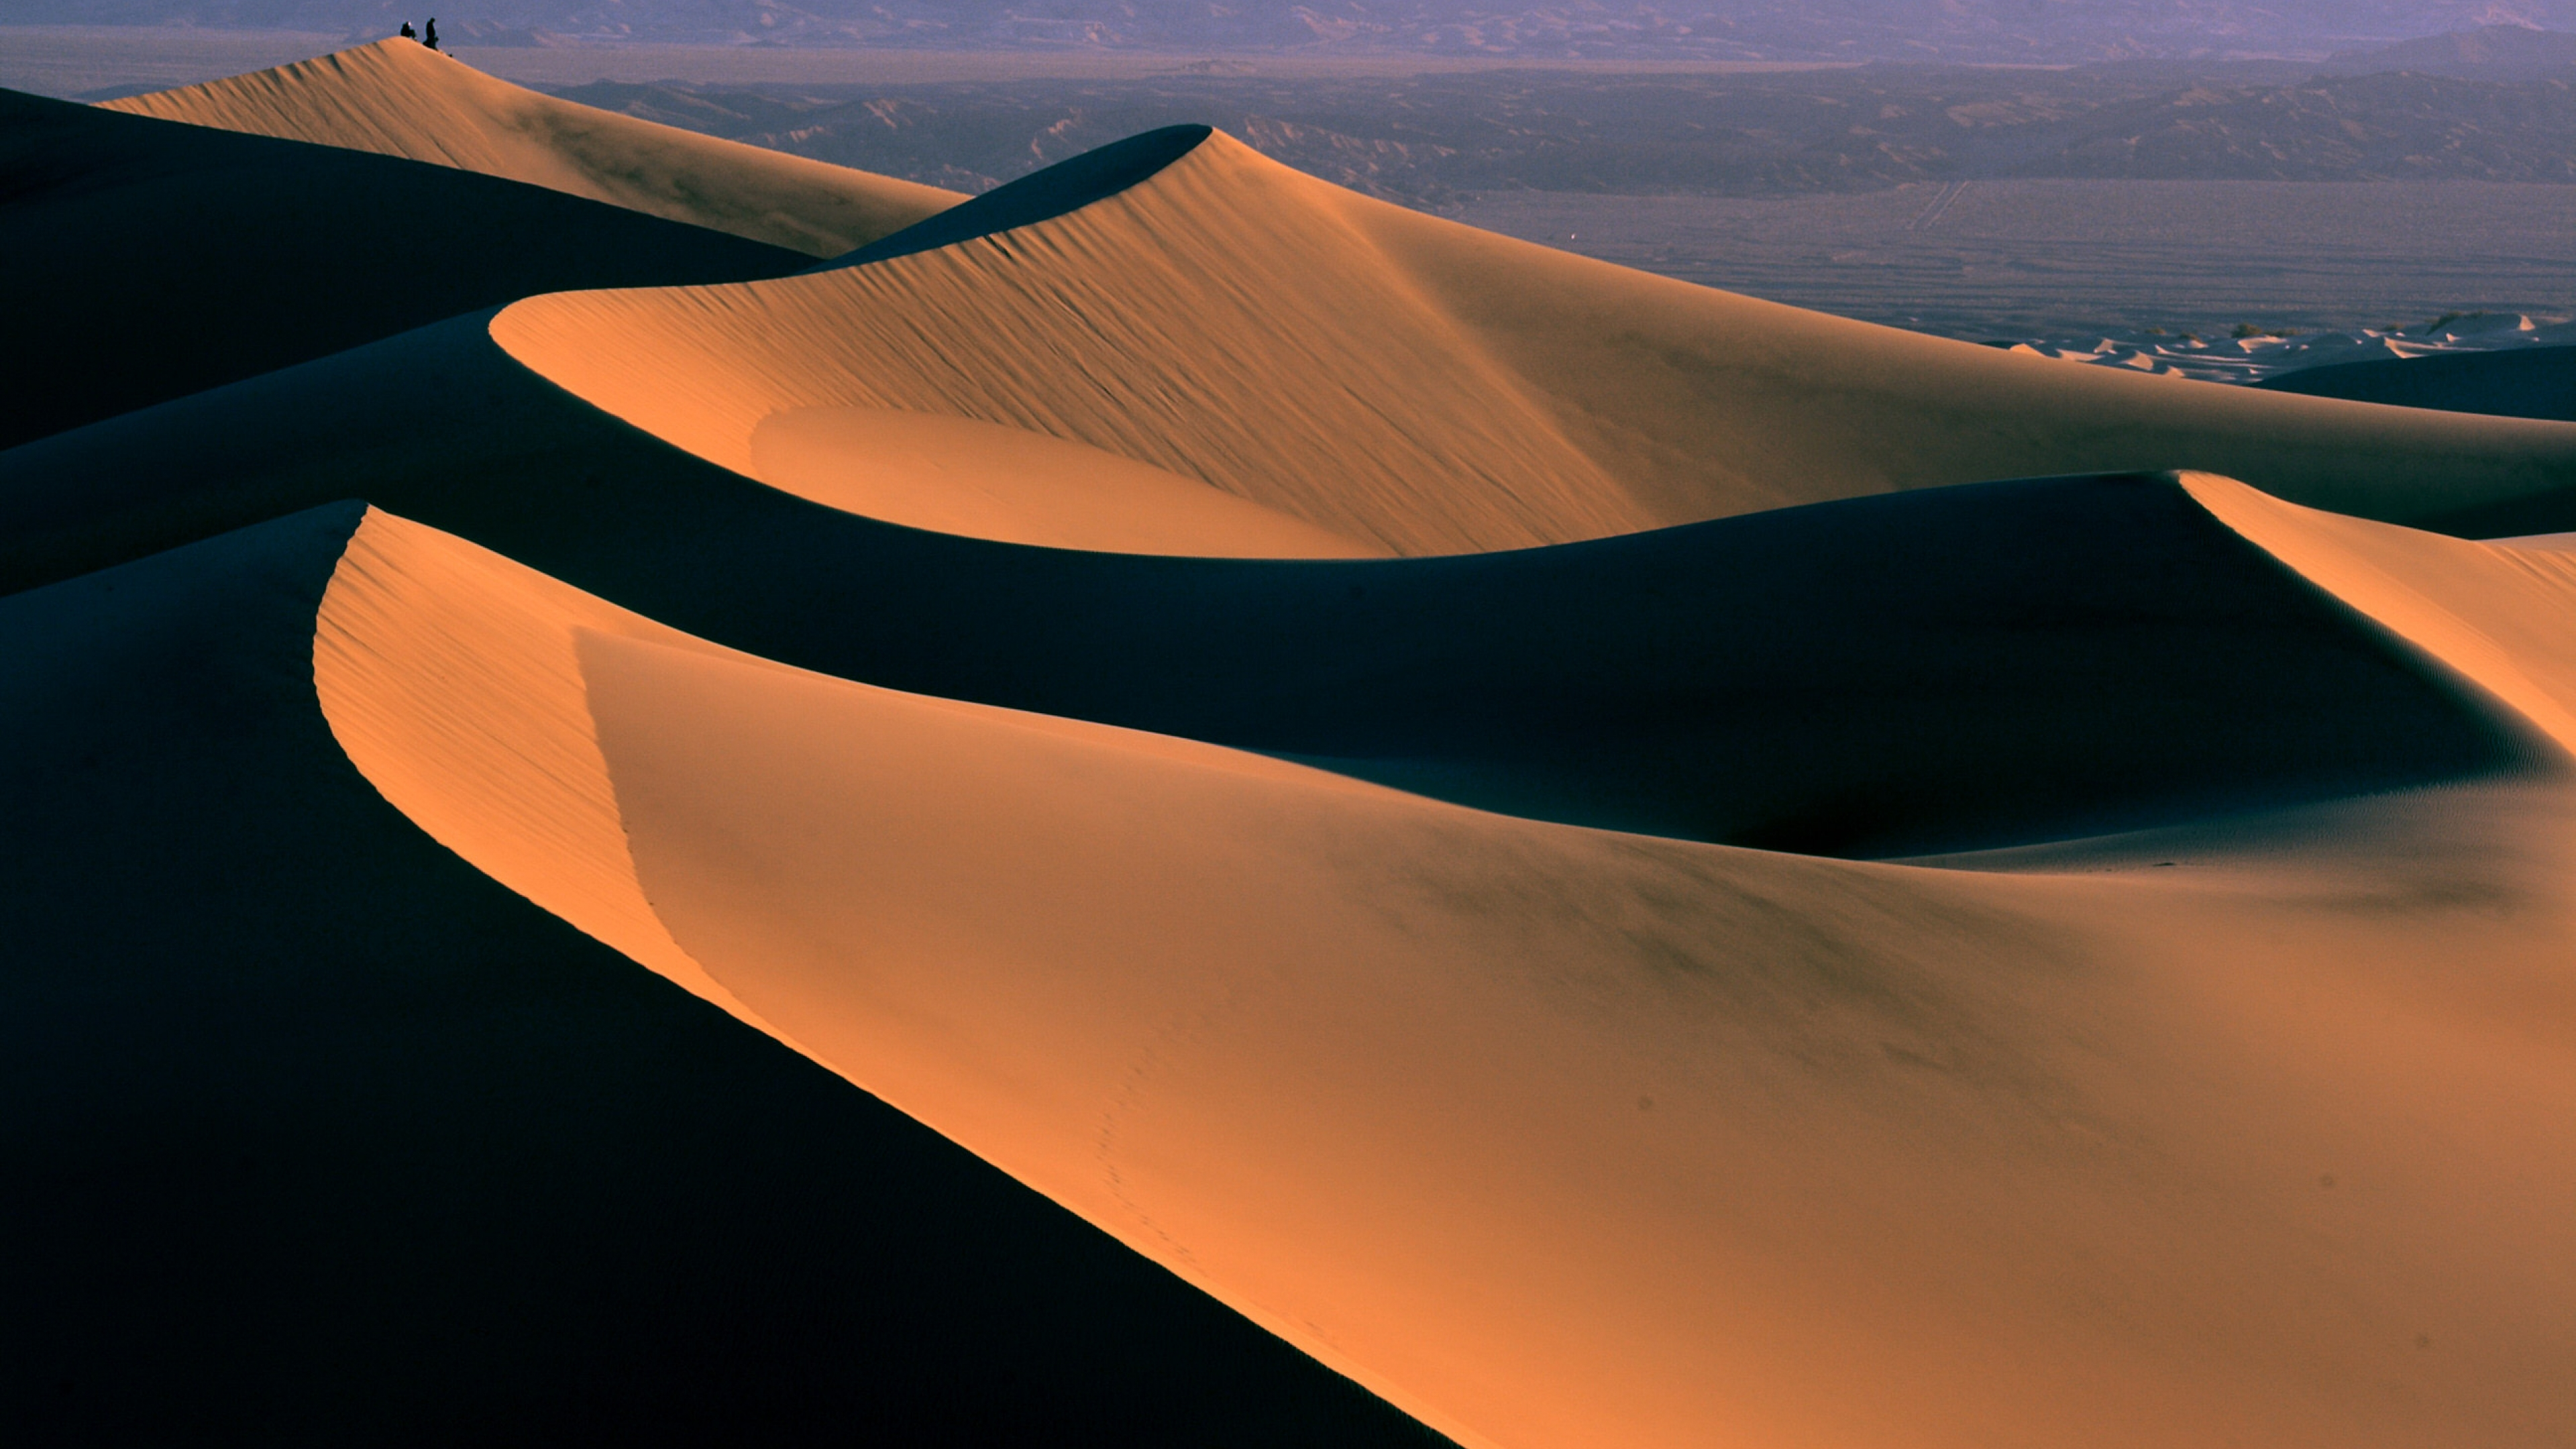 High contrast sand dunes at Death Valley National Park